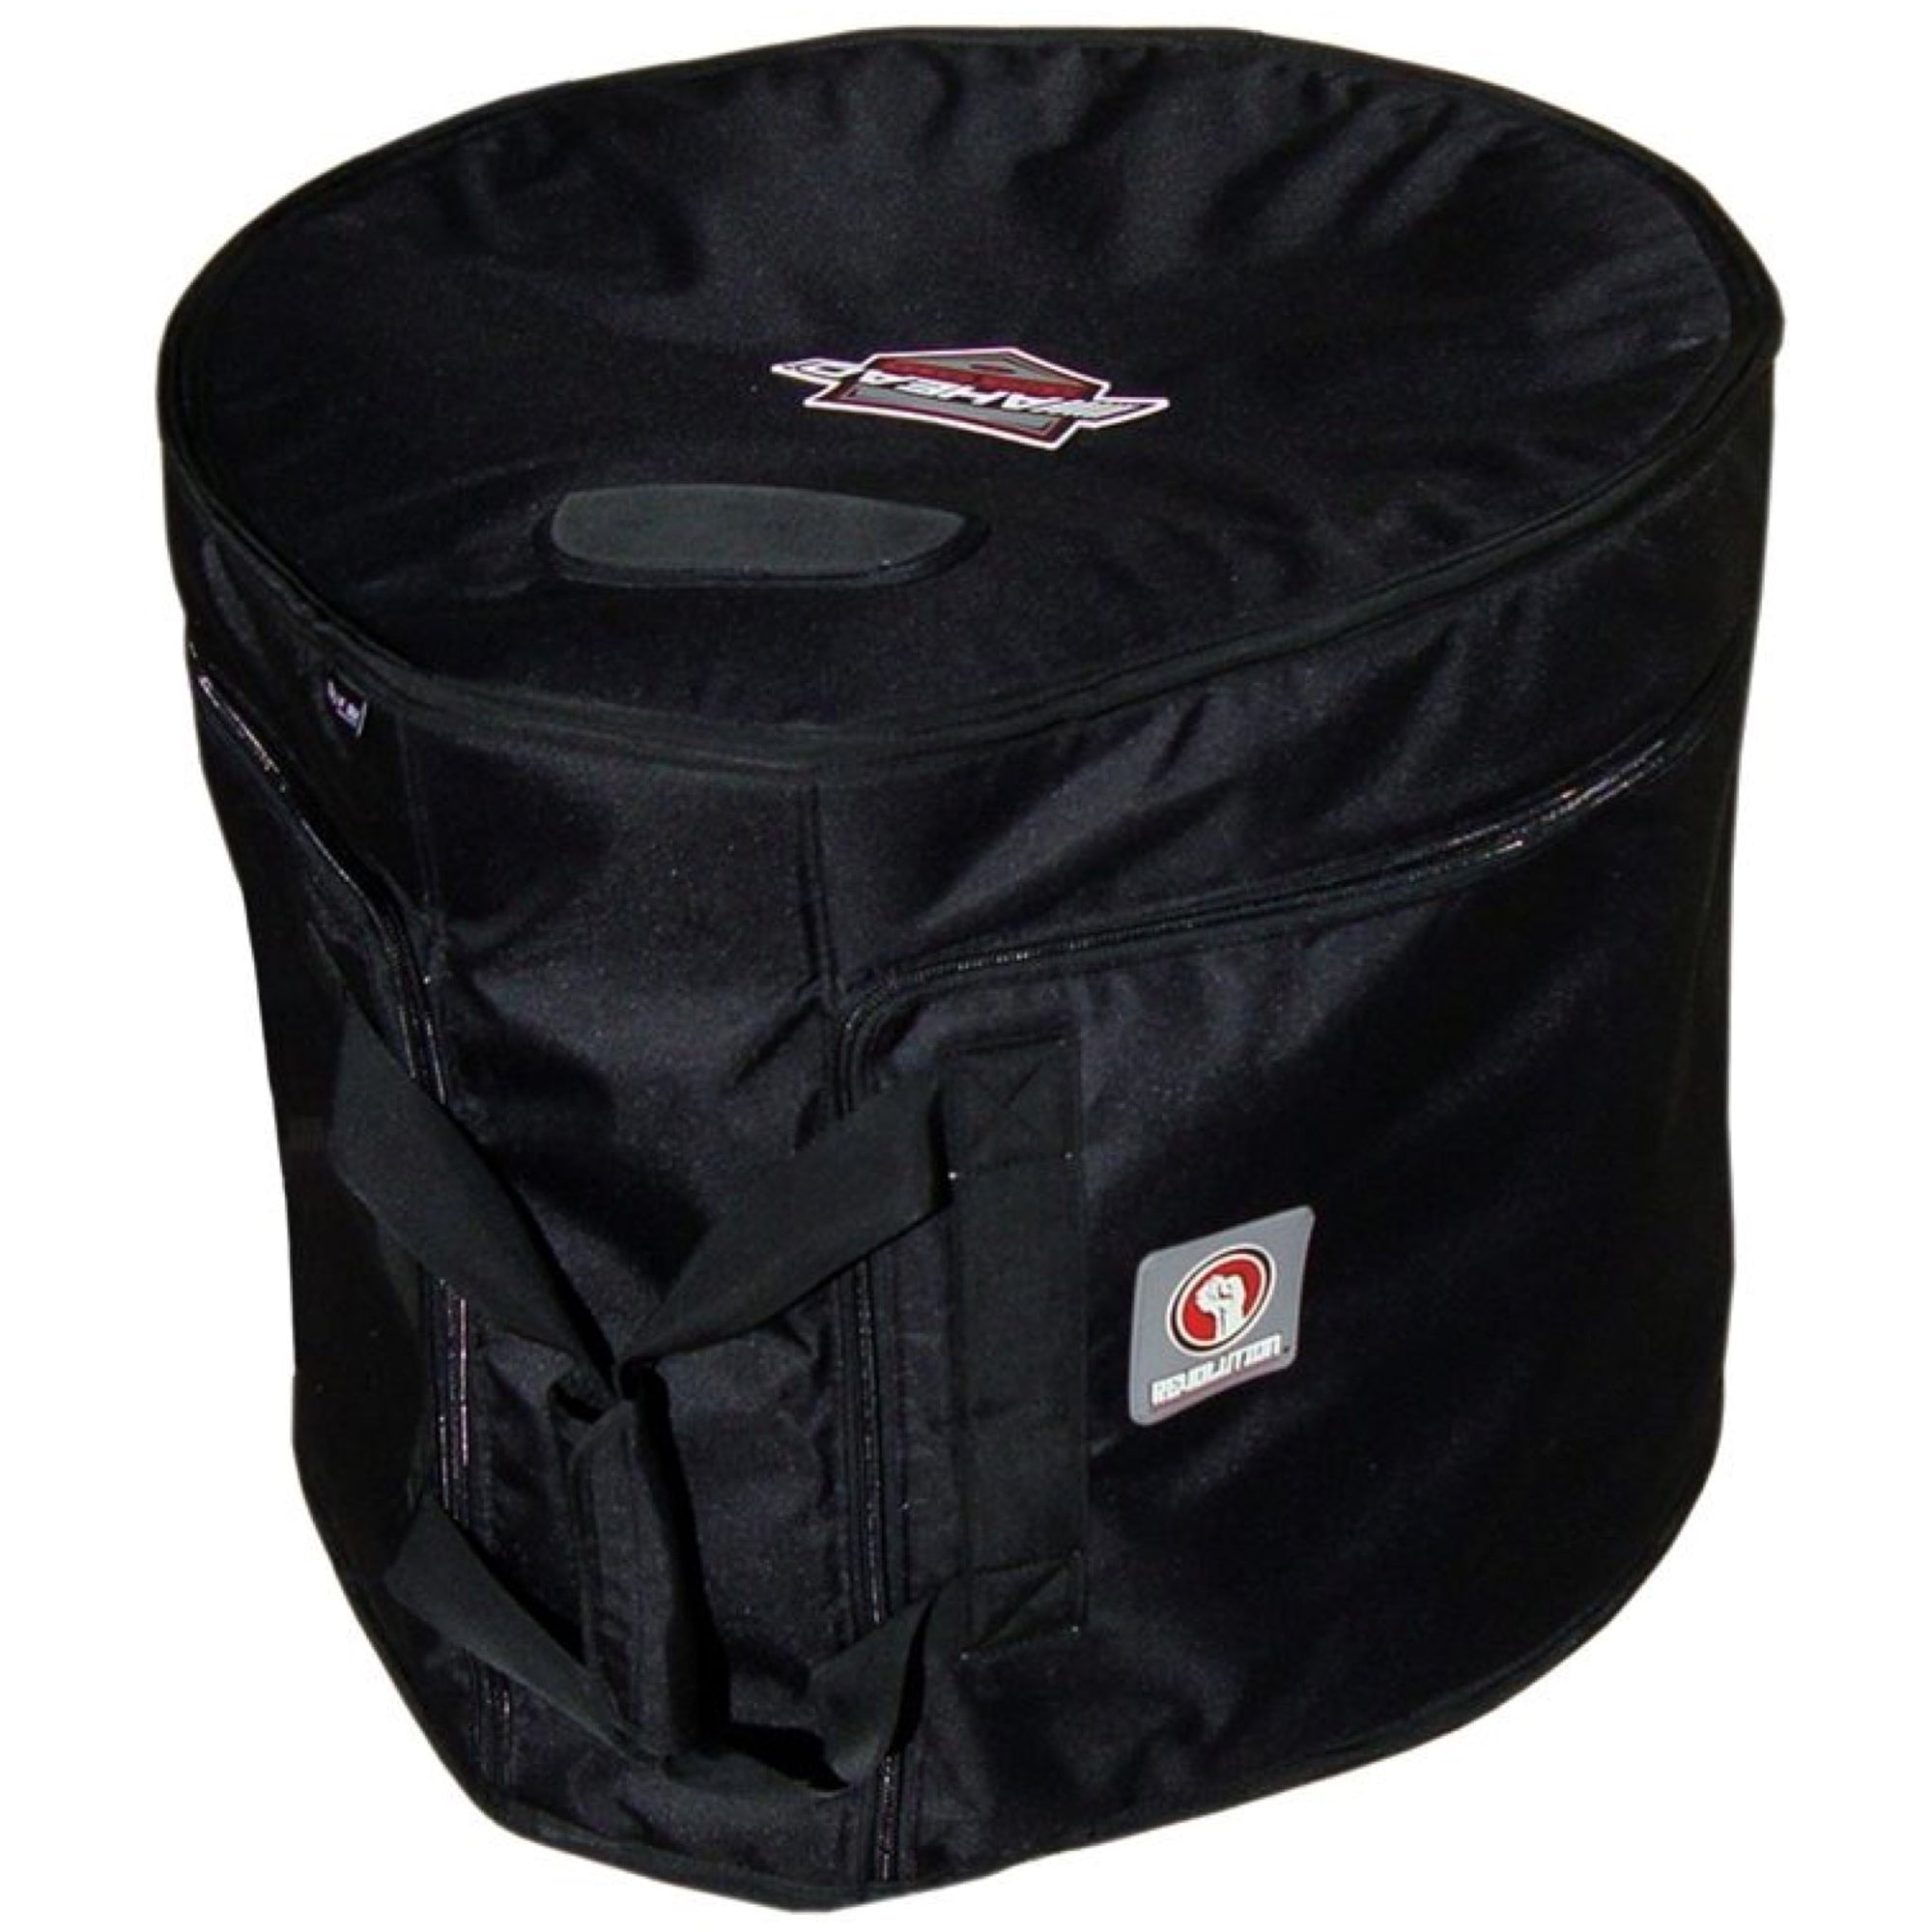 Ahead Armor Padded Bass Drum Bag, AR1822, 18x22 Inch